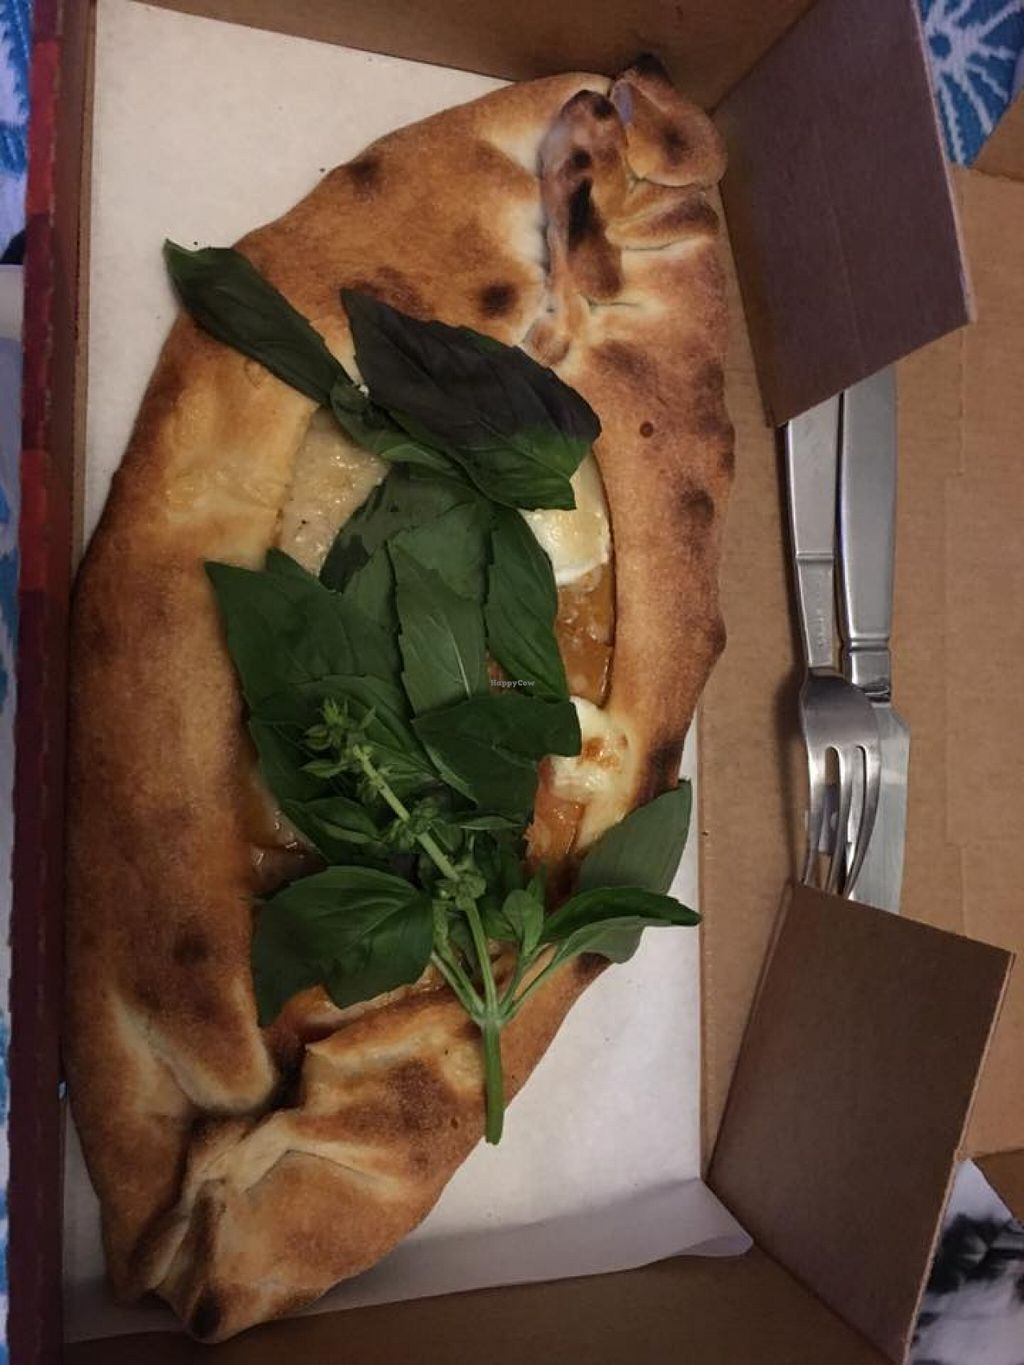 """Photo of La Pizza  by <a href=""""/members/profile/Clalex"""">Clalex</a> <br/>Baked vegan pizza <br/> May 8, 2016  - <a href='/contact/abuse/image/72960/148070'>Report</a>"""